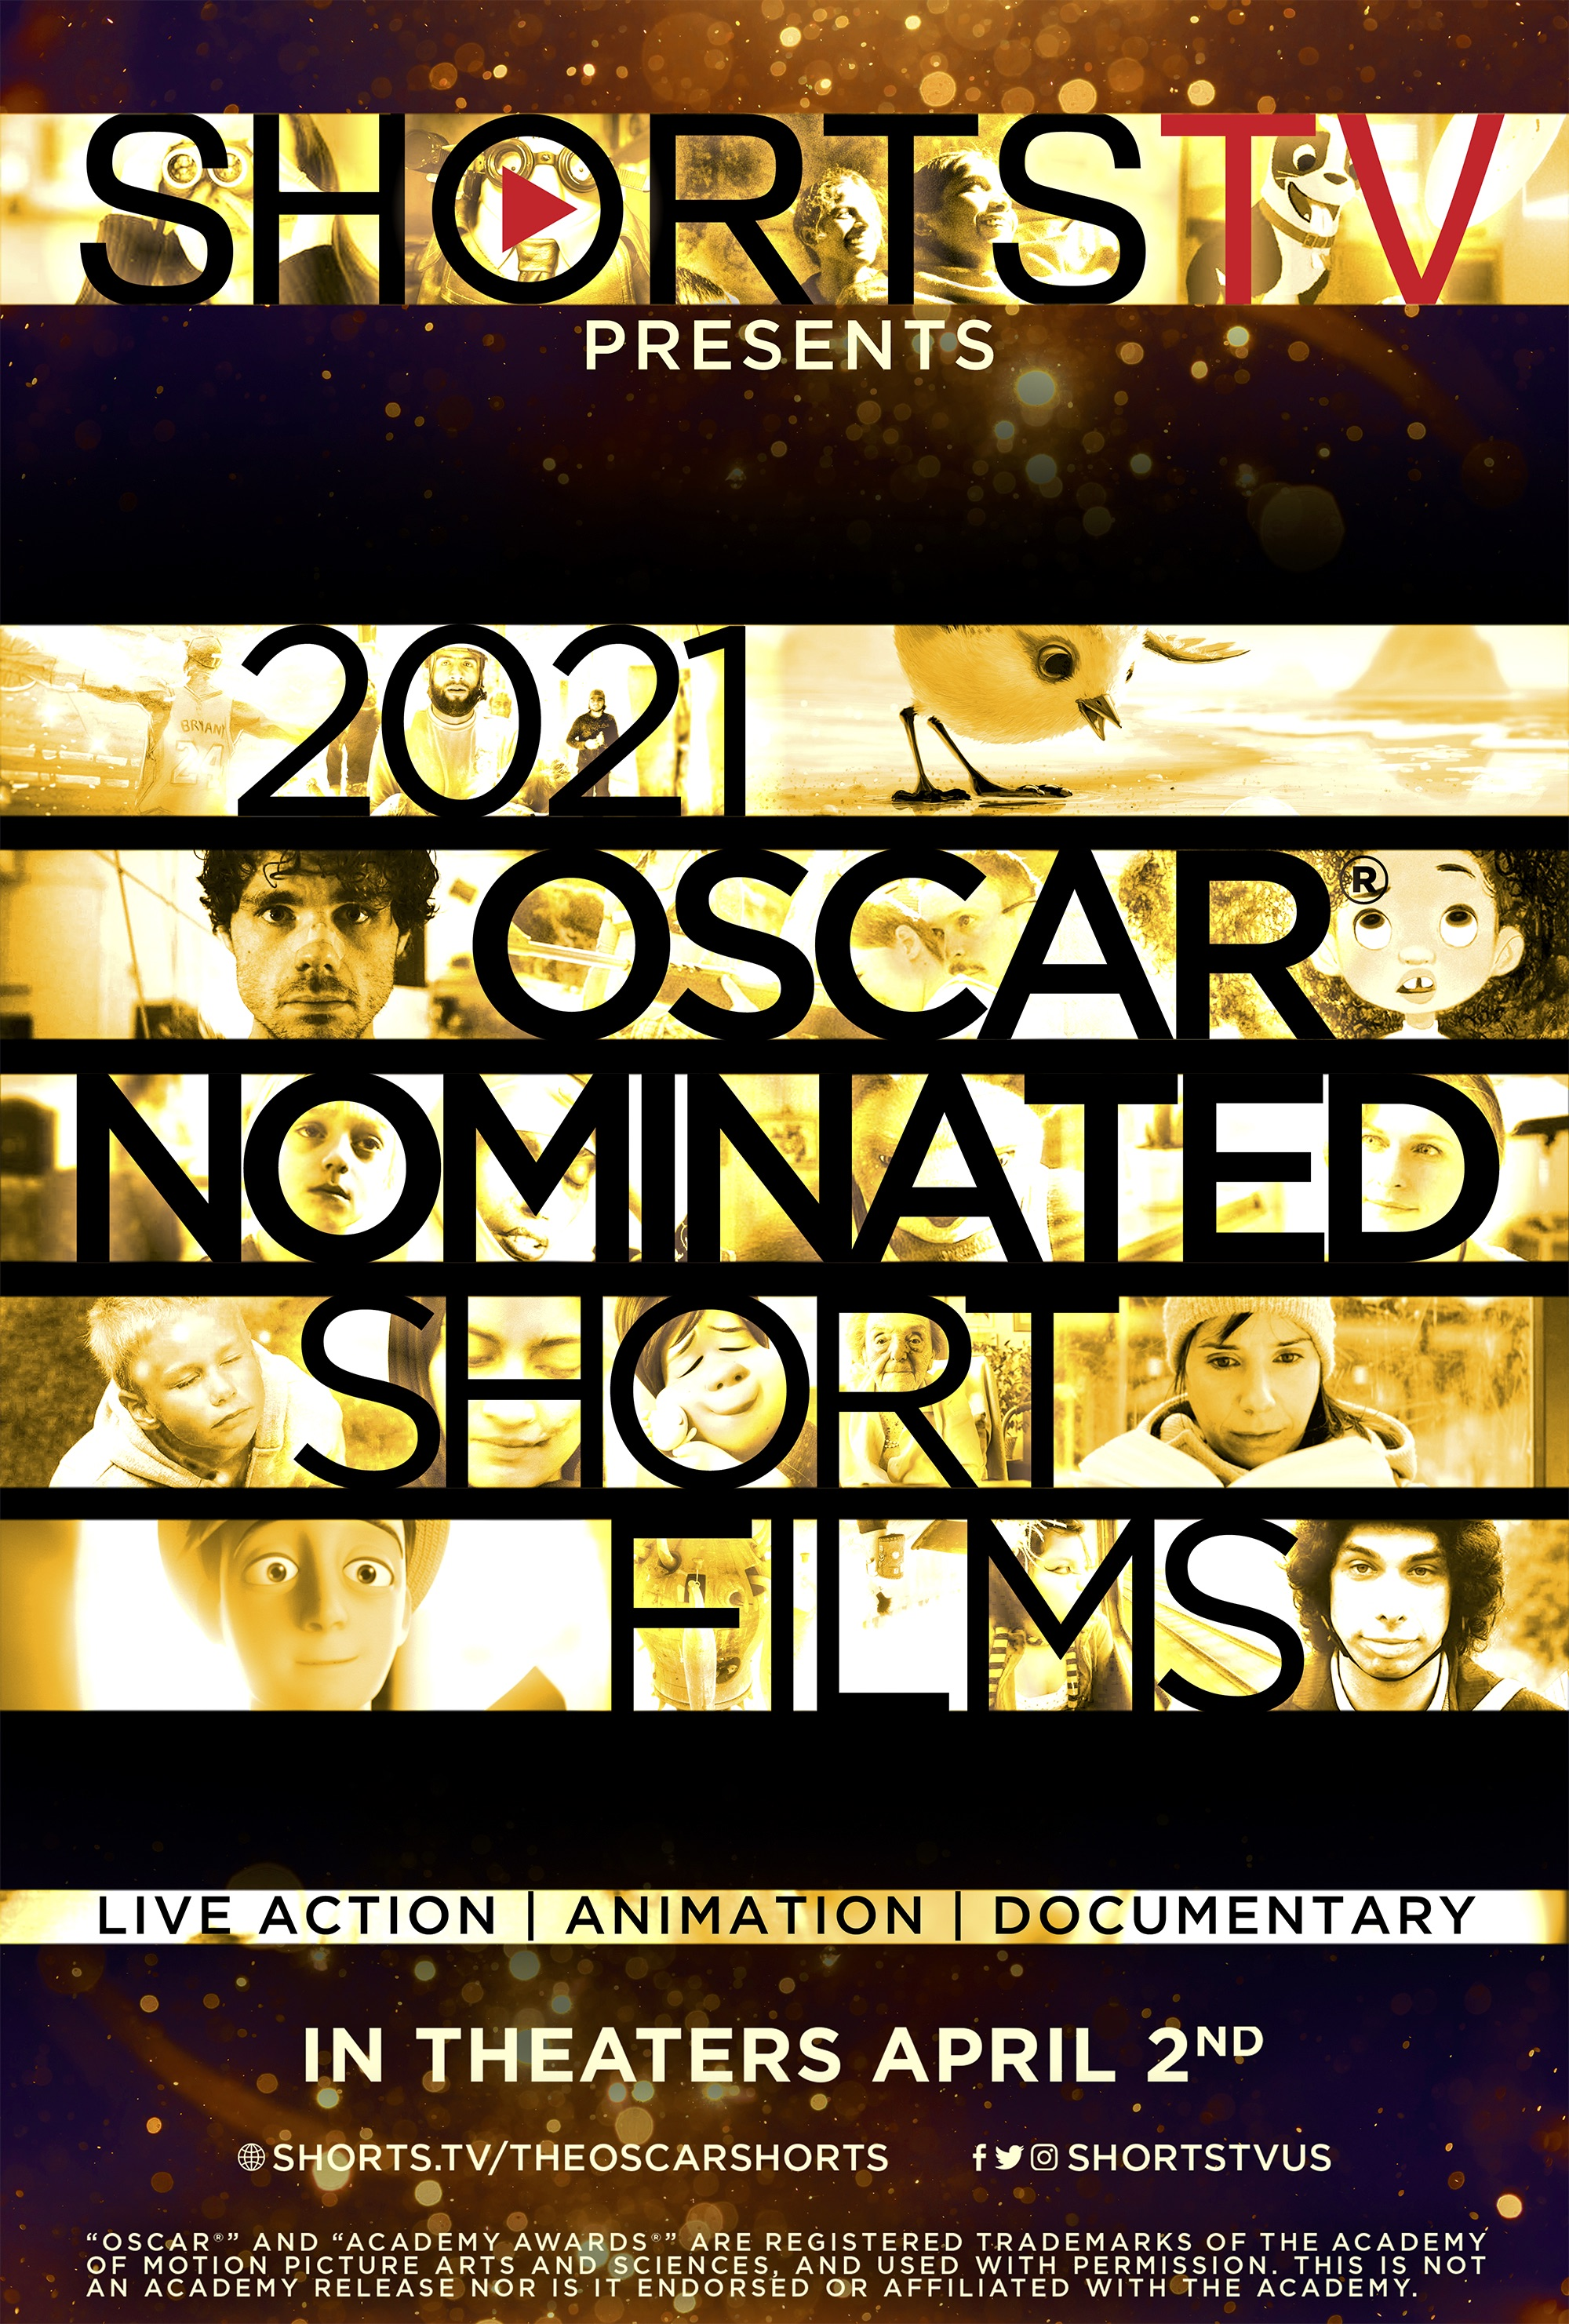 Poster for 2021 Oscar Nominated Live Action Shorts